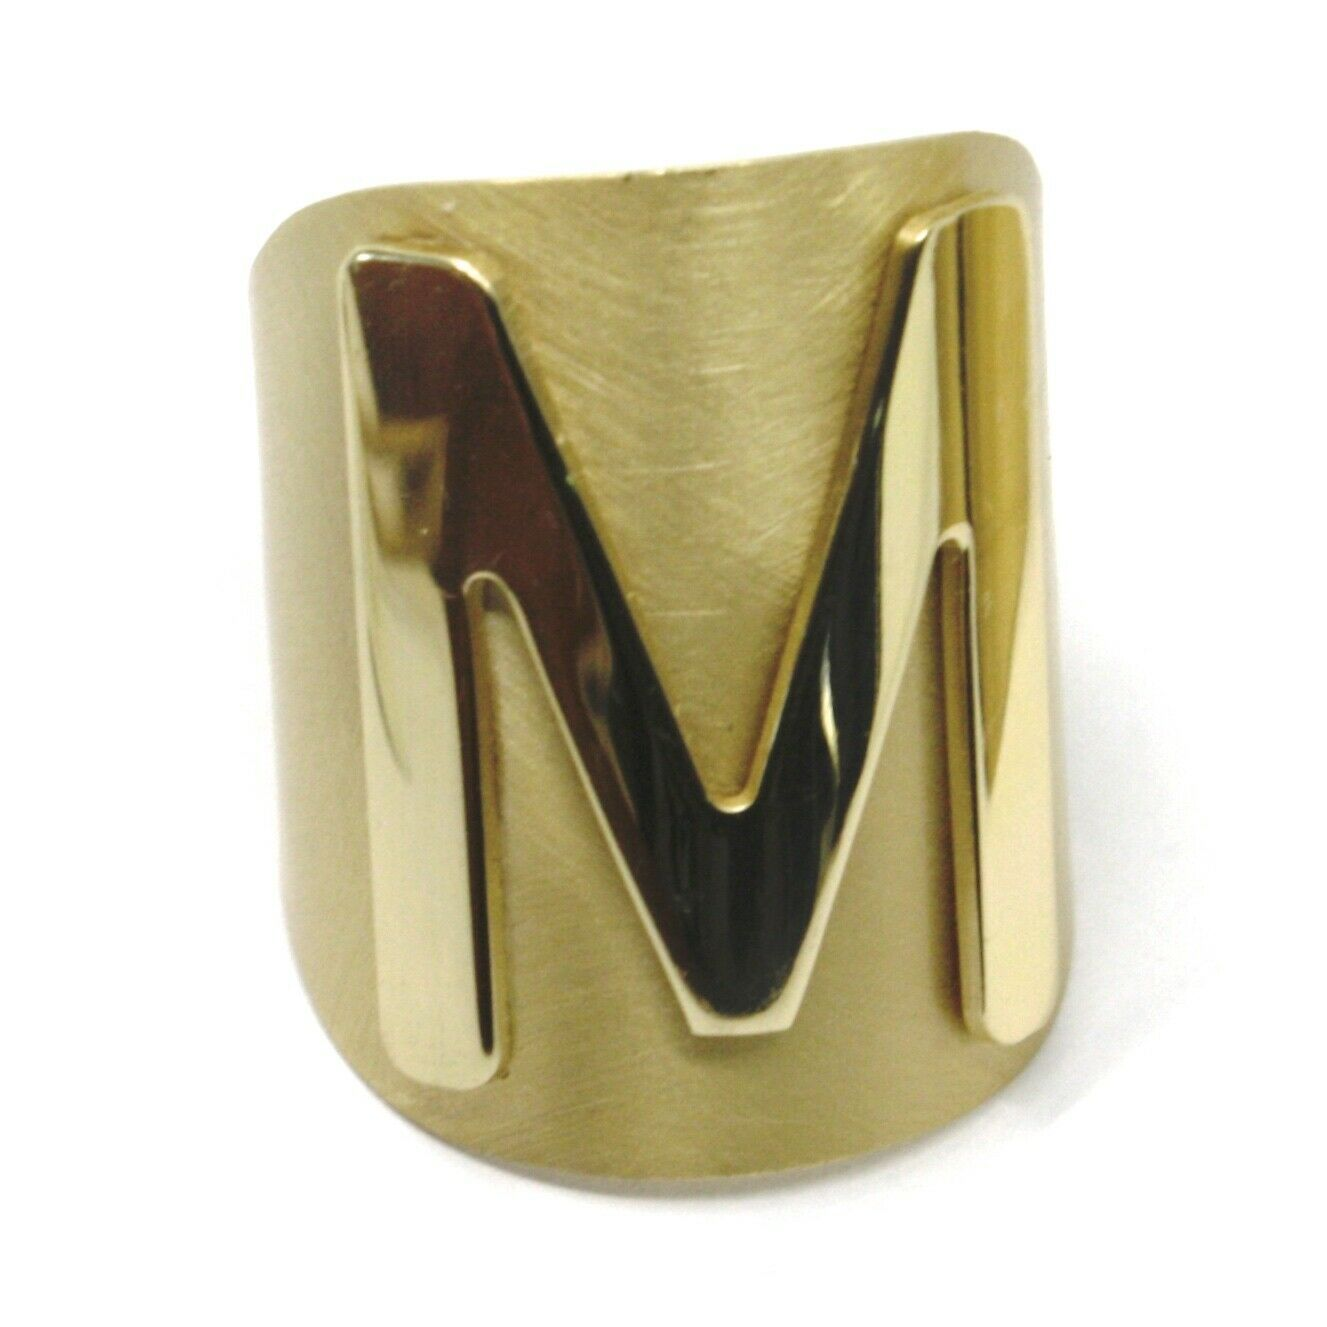 SOLID 925 STERLING SILVER BAND RING, BIG LETTER M, YELLOW SATIN FINISH, SIZABLE